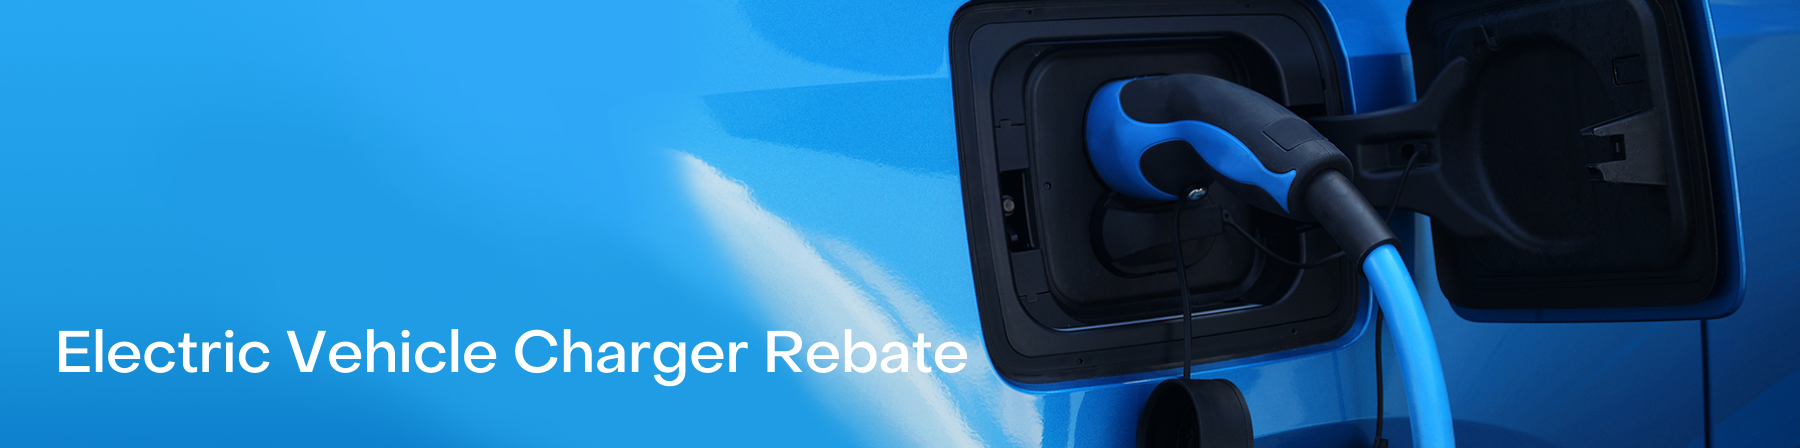 Electric Vehicle Charger Rebate